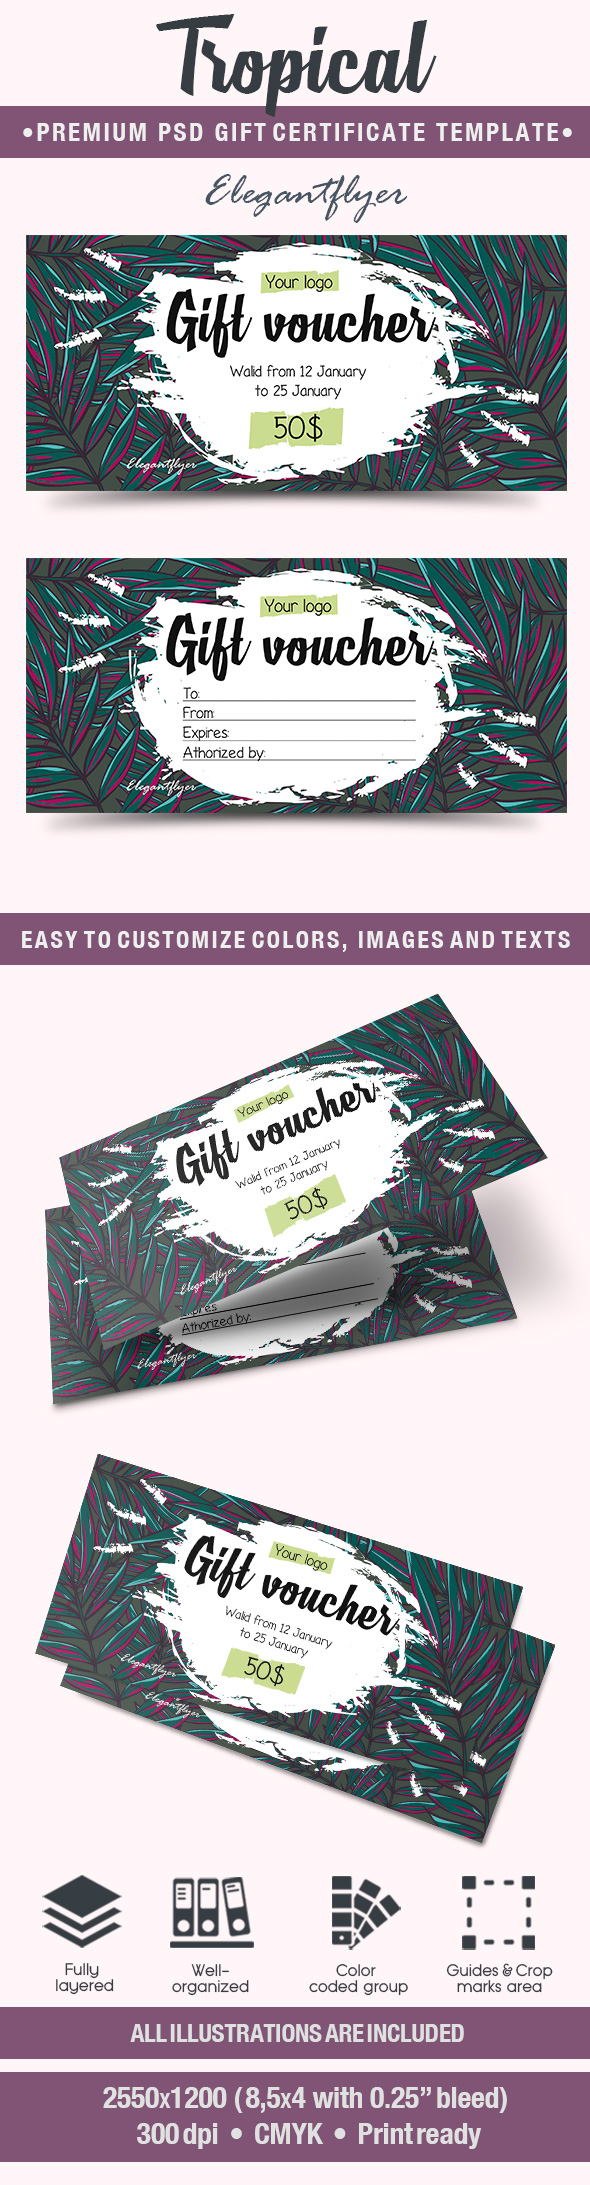 Tropical – Premium Gift Certificate PSD Template